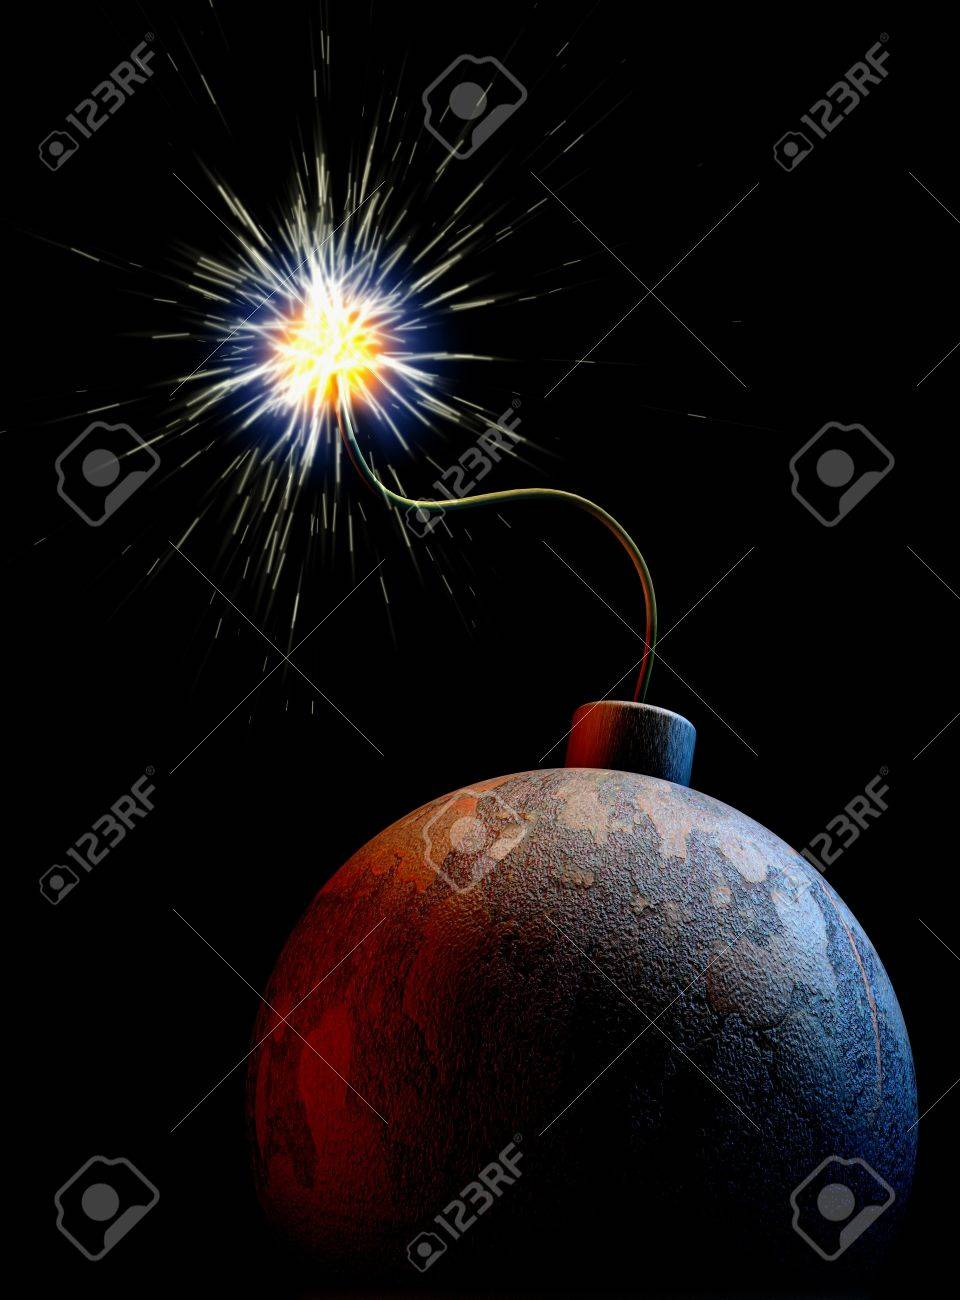 The planet earth as a bomb with burning fuse at a black background - 6344974